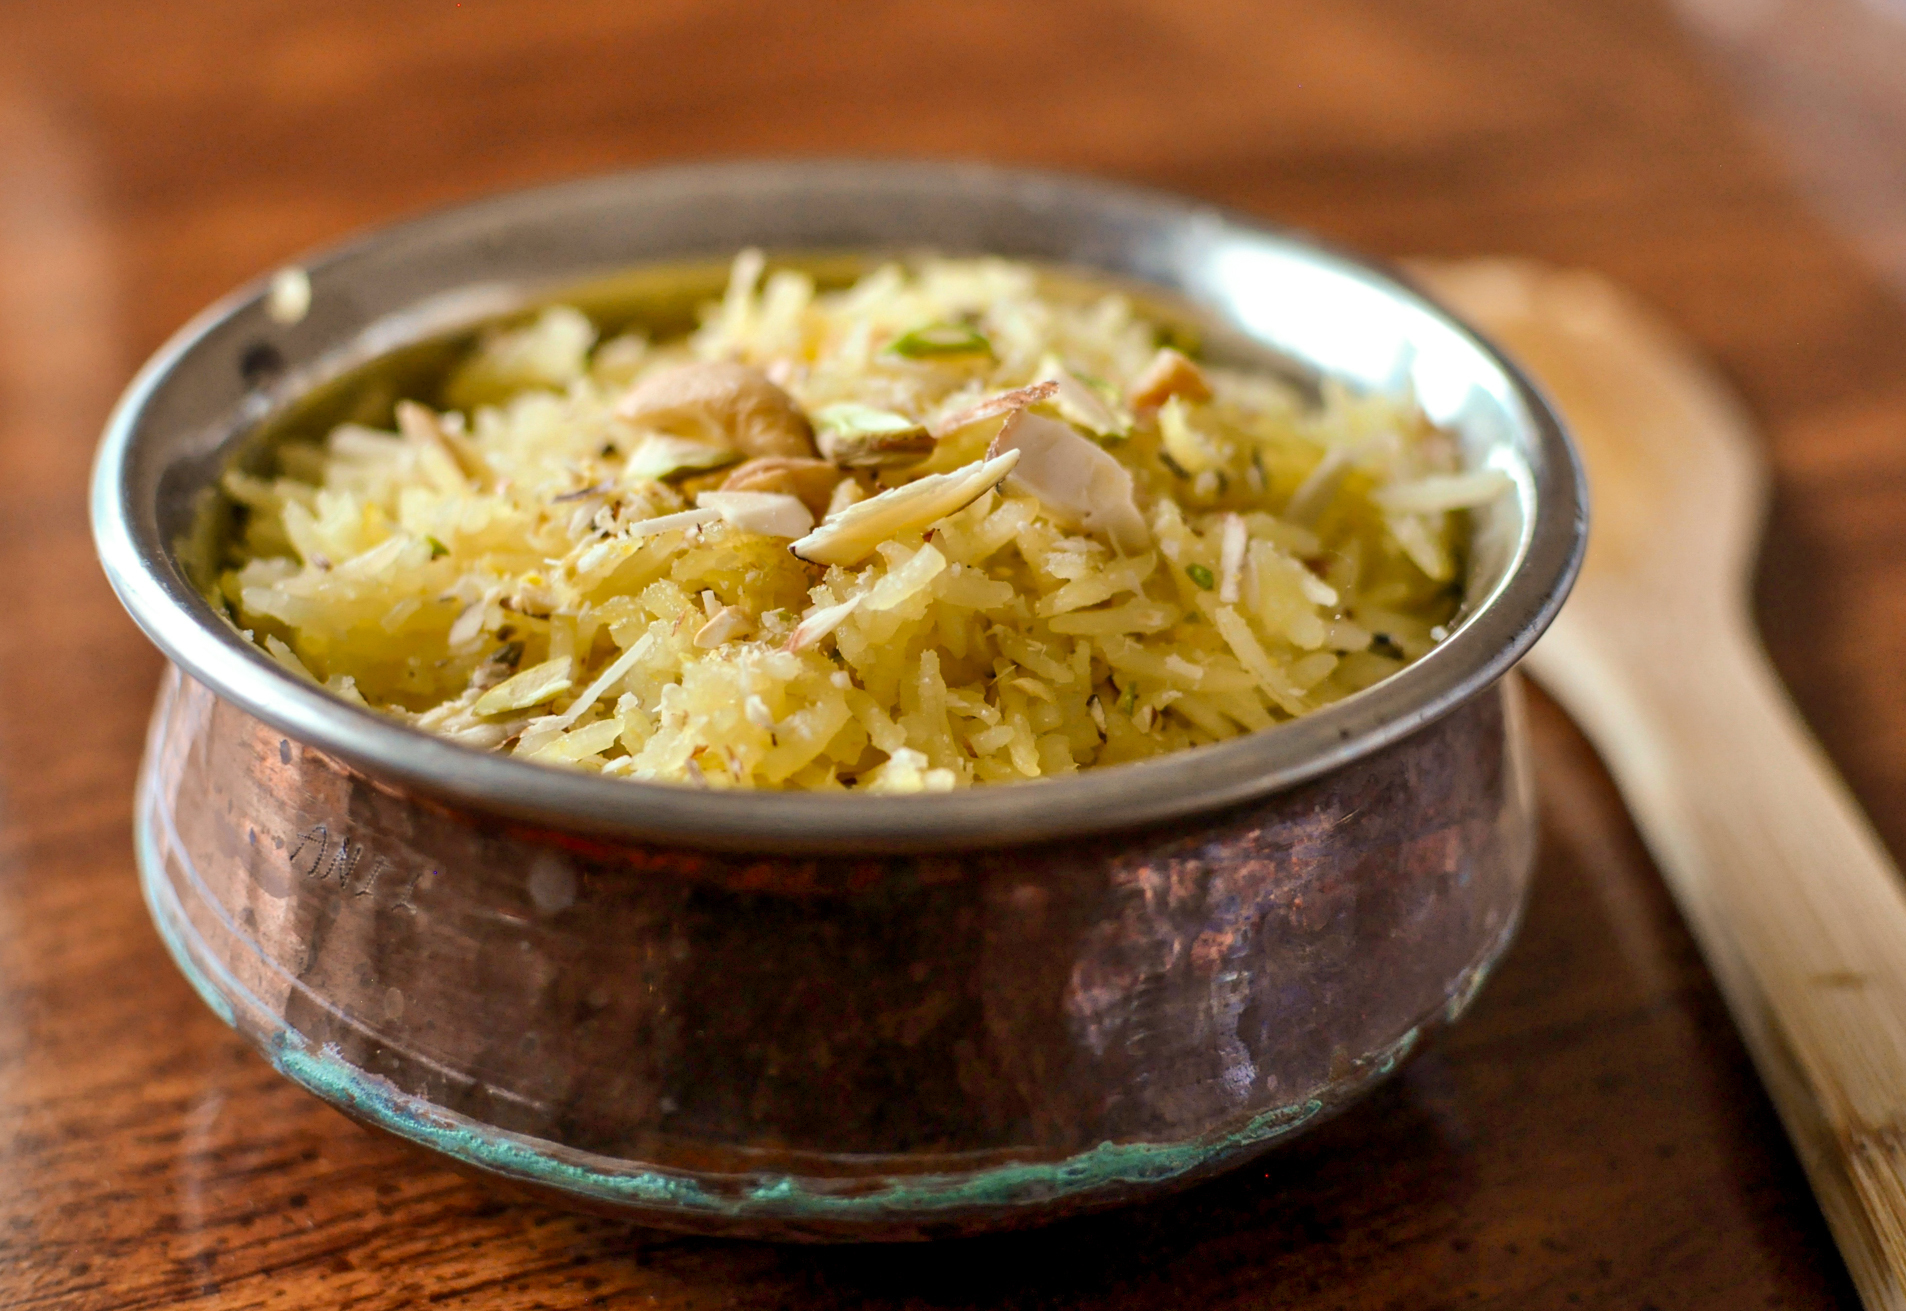 The Tahri That Binds: How A Sweet Rice Dish Connects A Woman To Her History